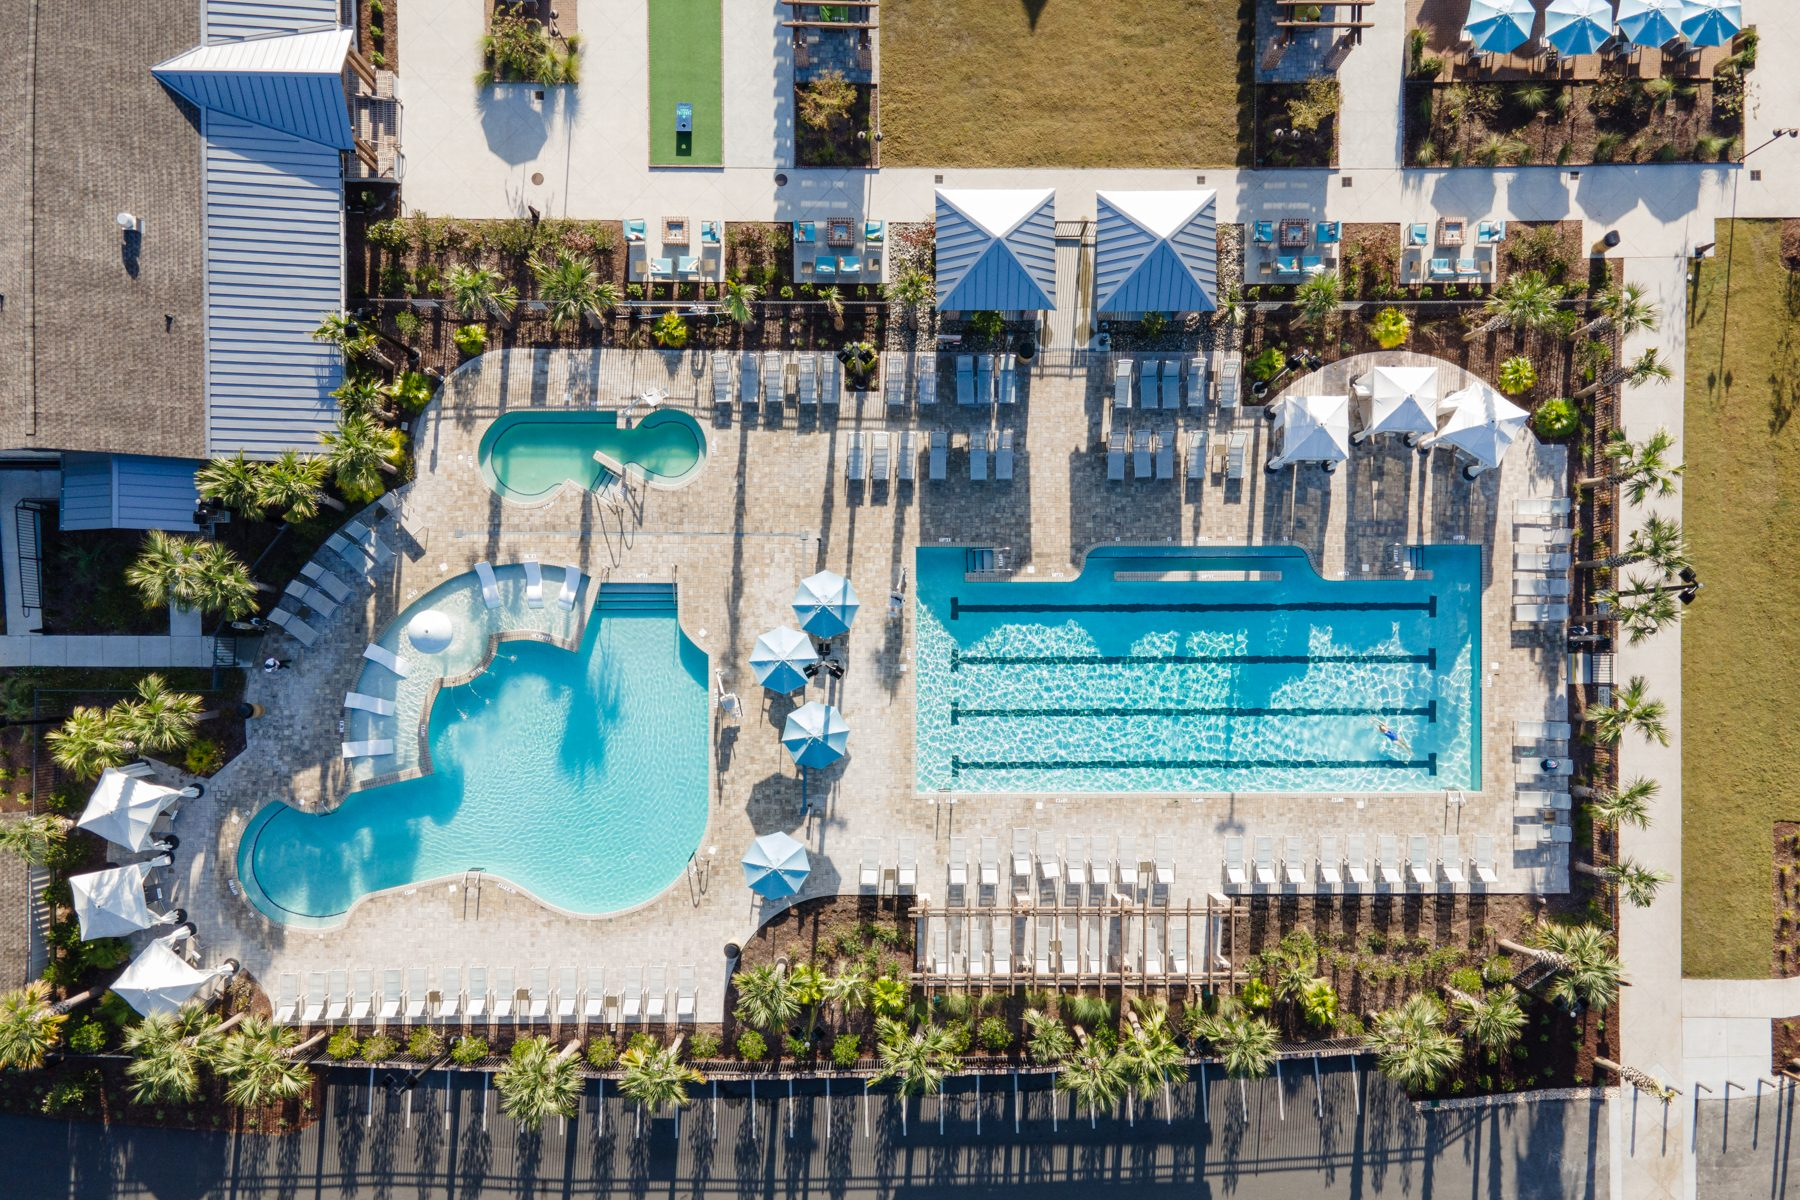 A birds-eye view of the serenity pool area at Carolina Pines Resort in Conway, South Carolina.